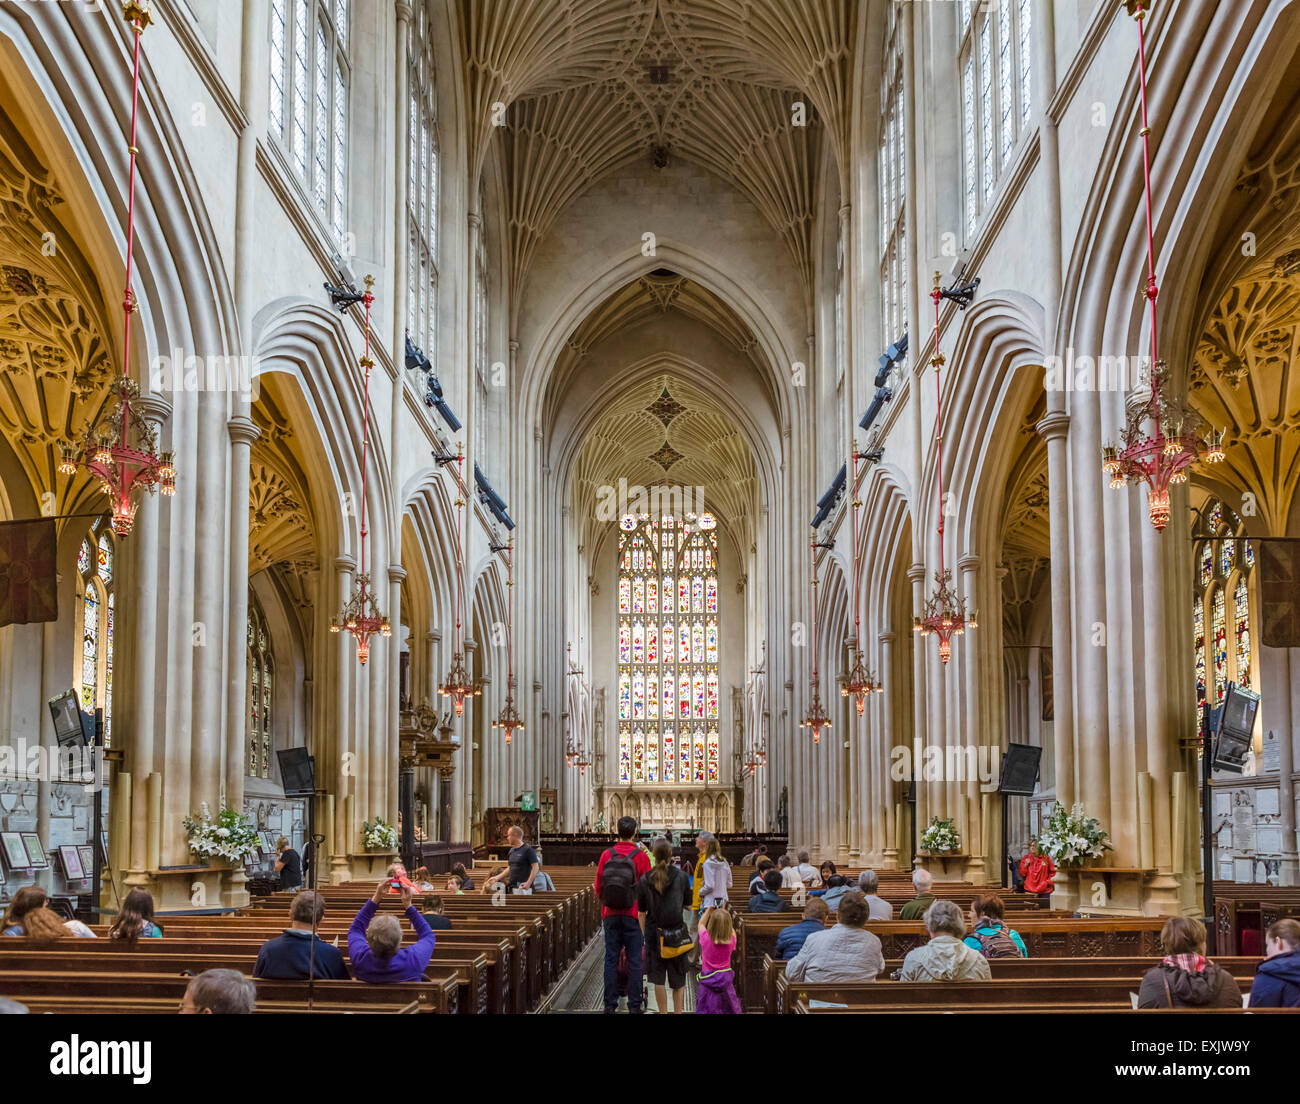 Interior of Bath Abbey, Bath, Somerset, England, UK - Stock Image